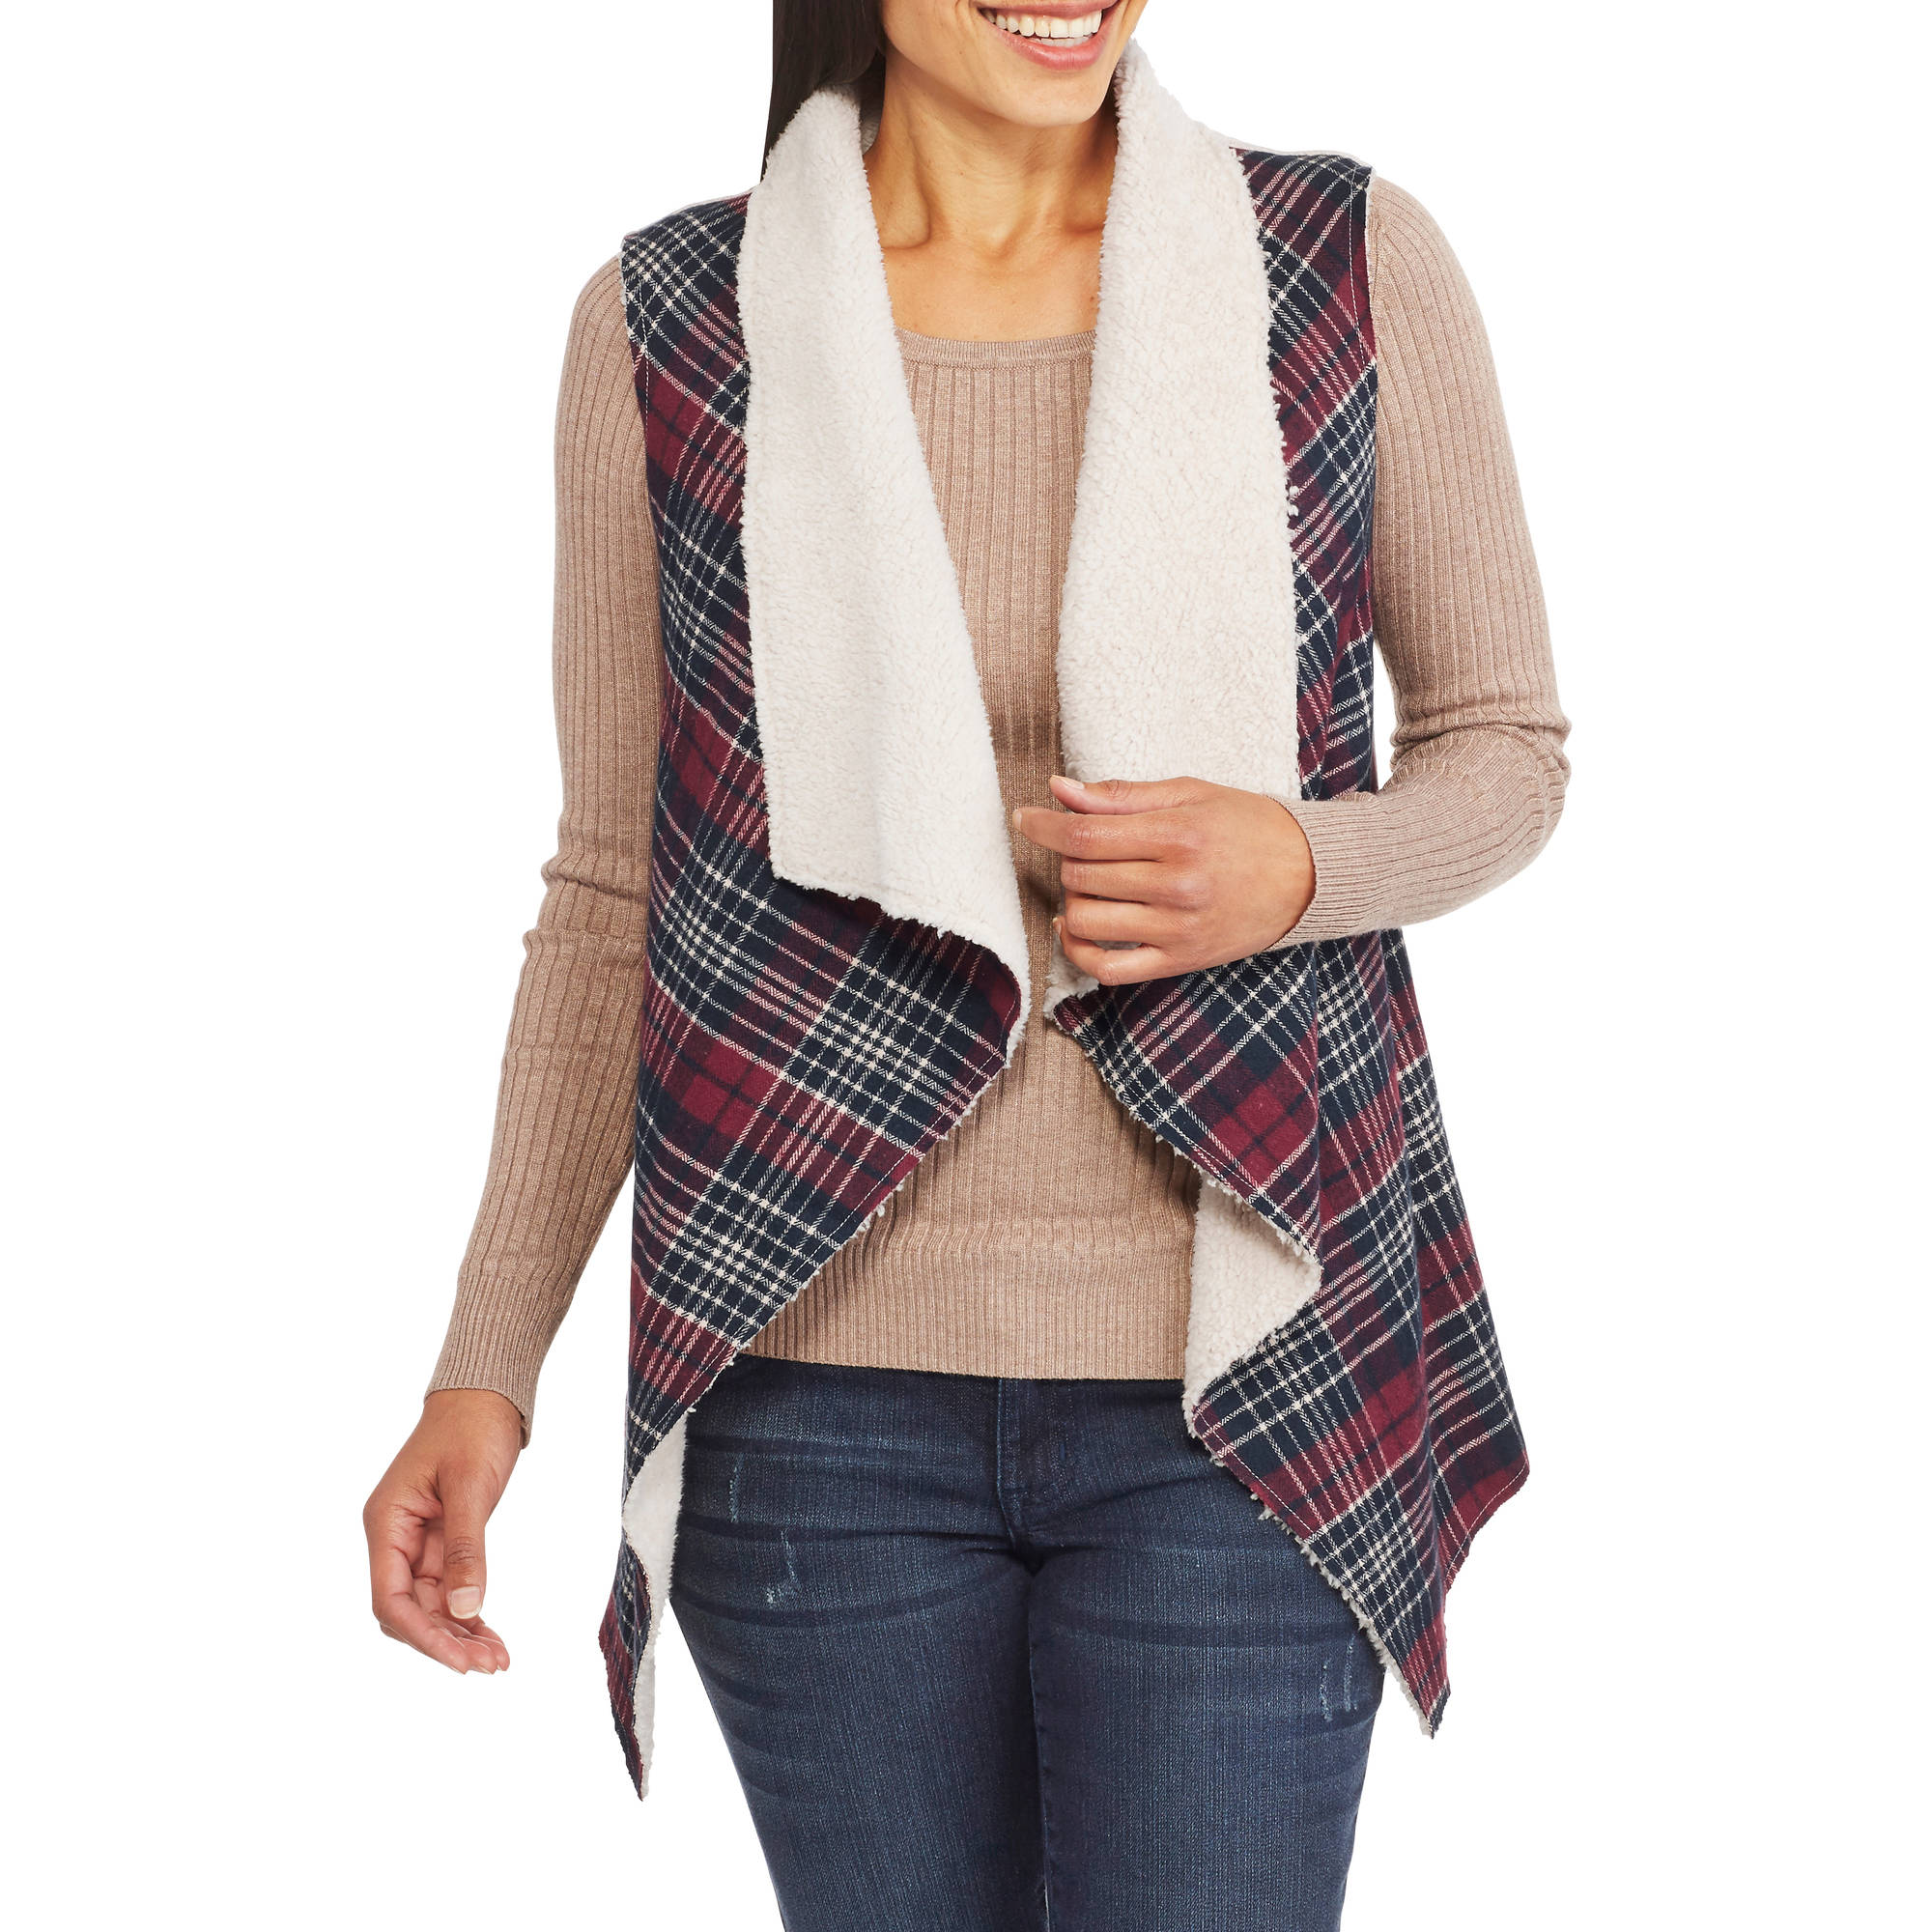 Concepts Women's Plaid Shearling Vest